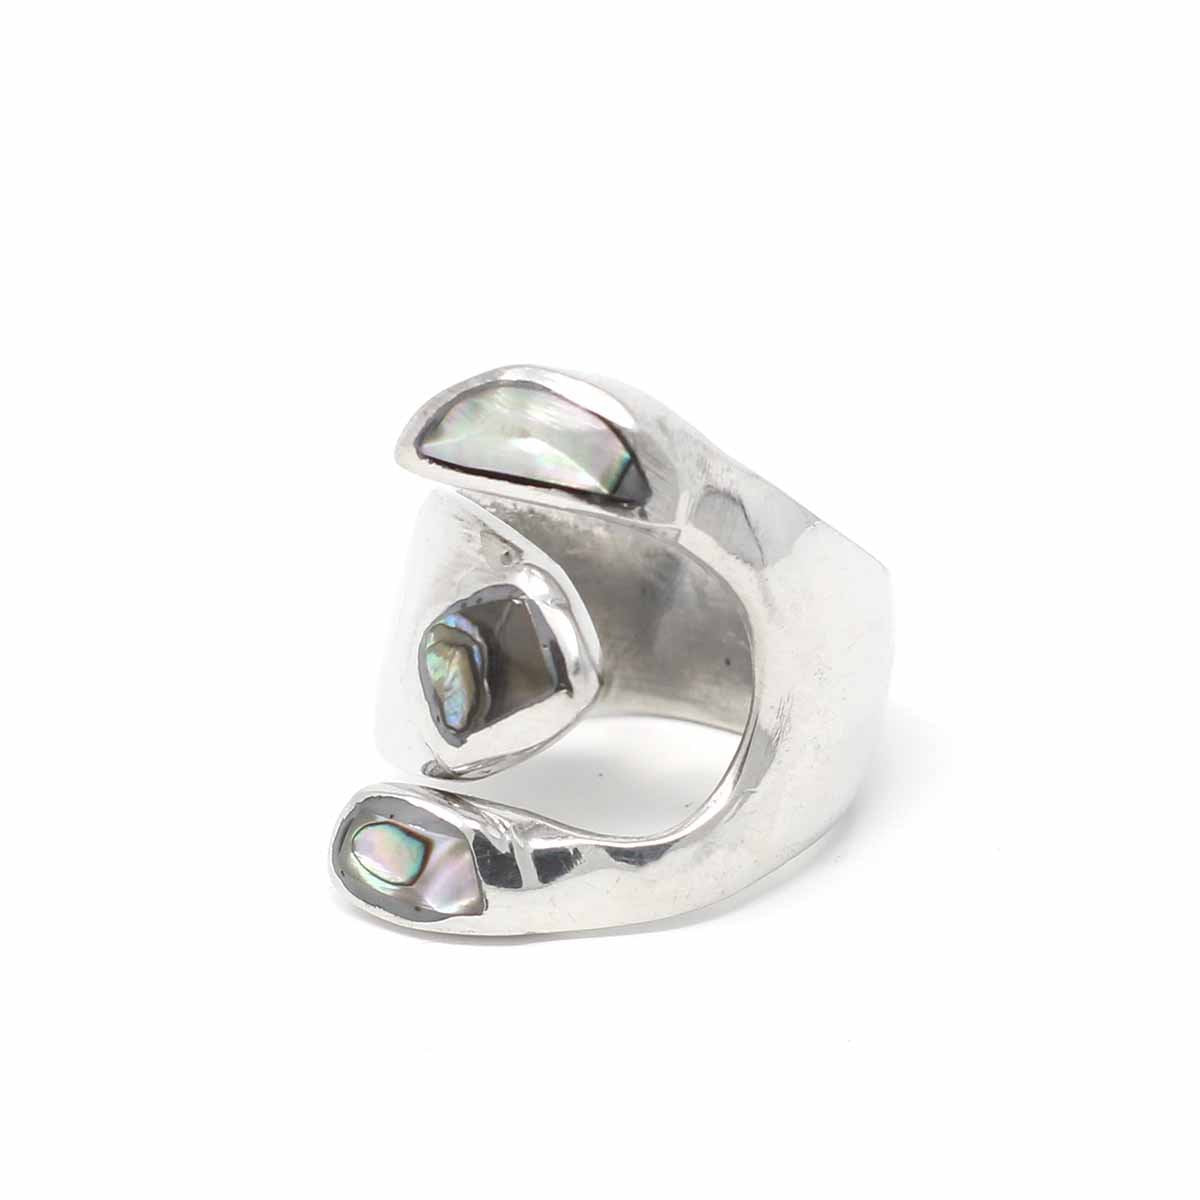 Alpaca Silver Wrap Ring, Abalone - Size 6